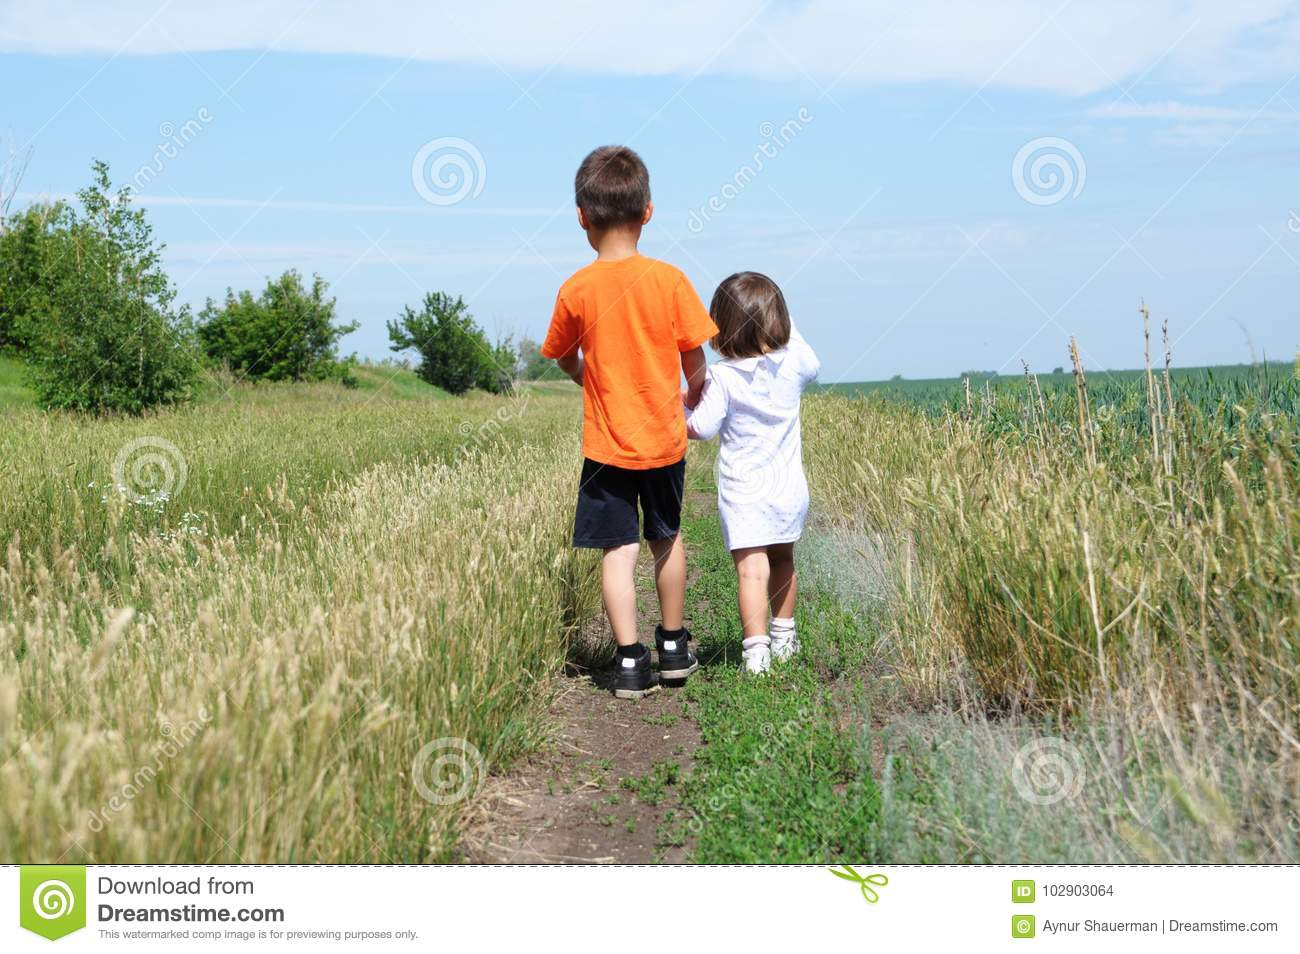 Little boy and little girl walking away on the road in the field at summer day, brother and sister